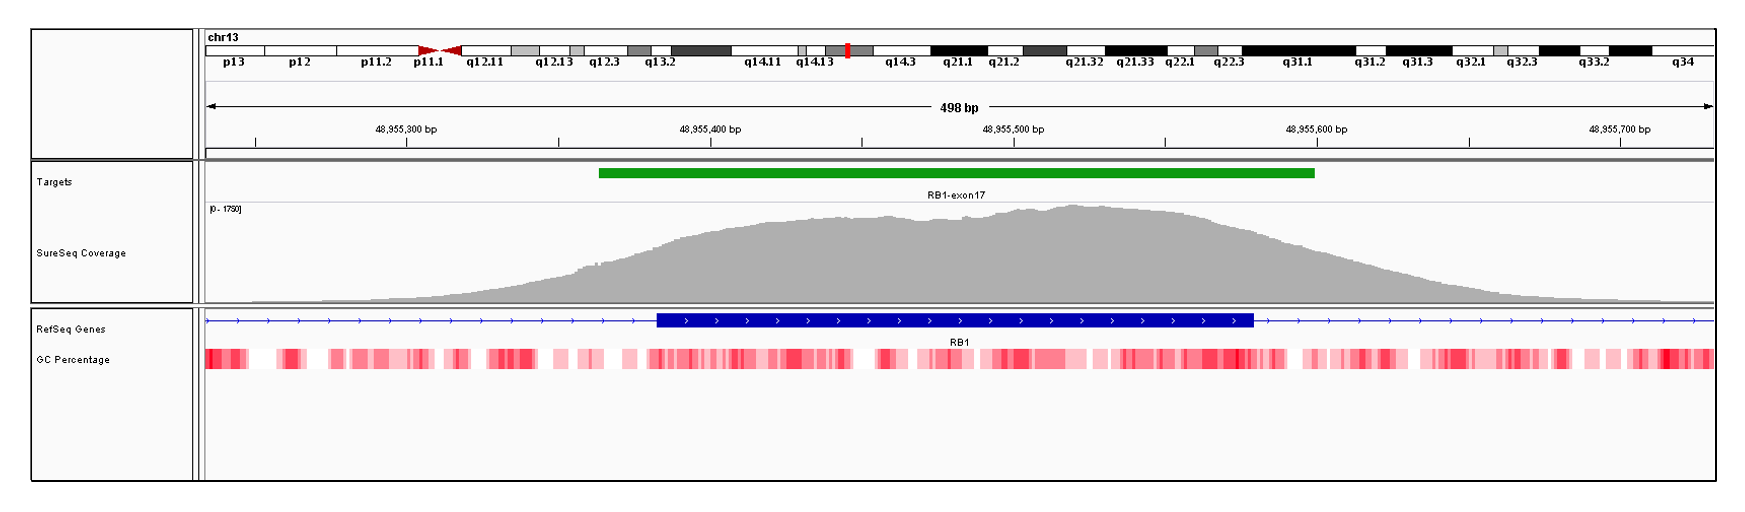 RB1 Exon 17 (hg19 chr13:48955383-48955579). Depth of coverage per base (grey). Targeted region (green). Gene coding region as defined by RefSeq (blue). GC percentage (red). Image